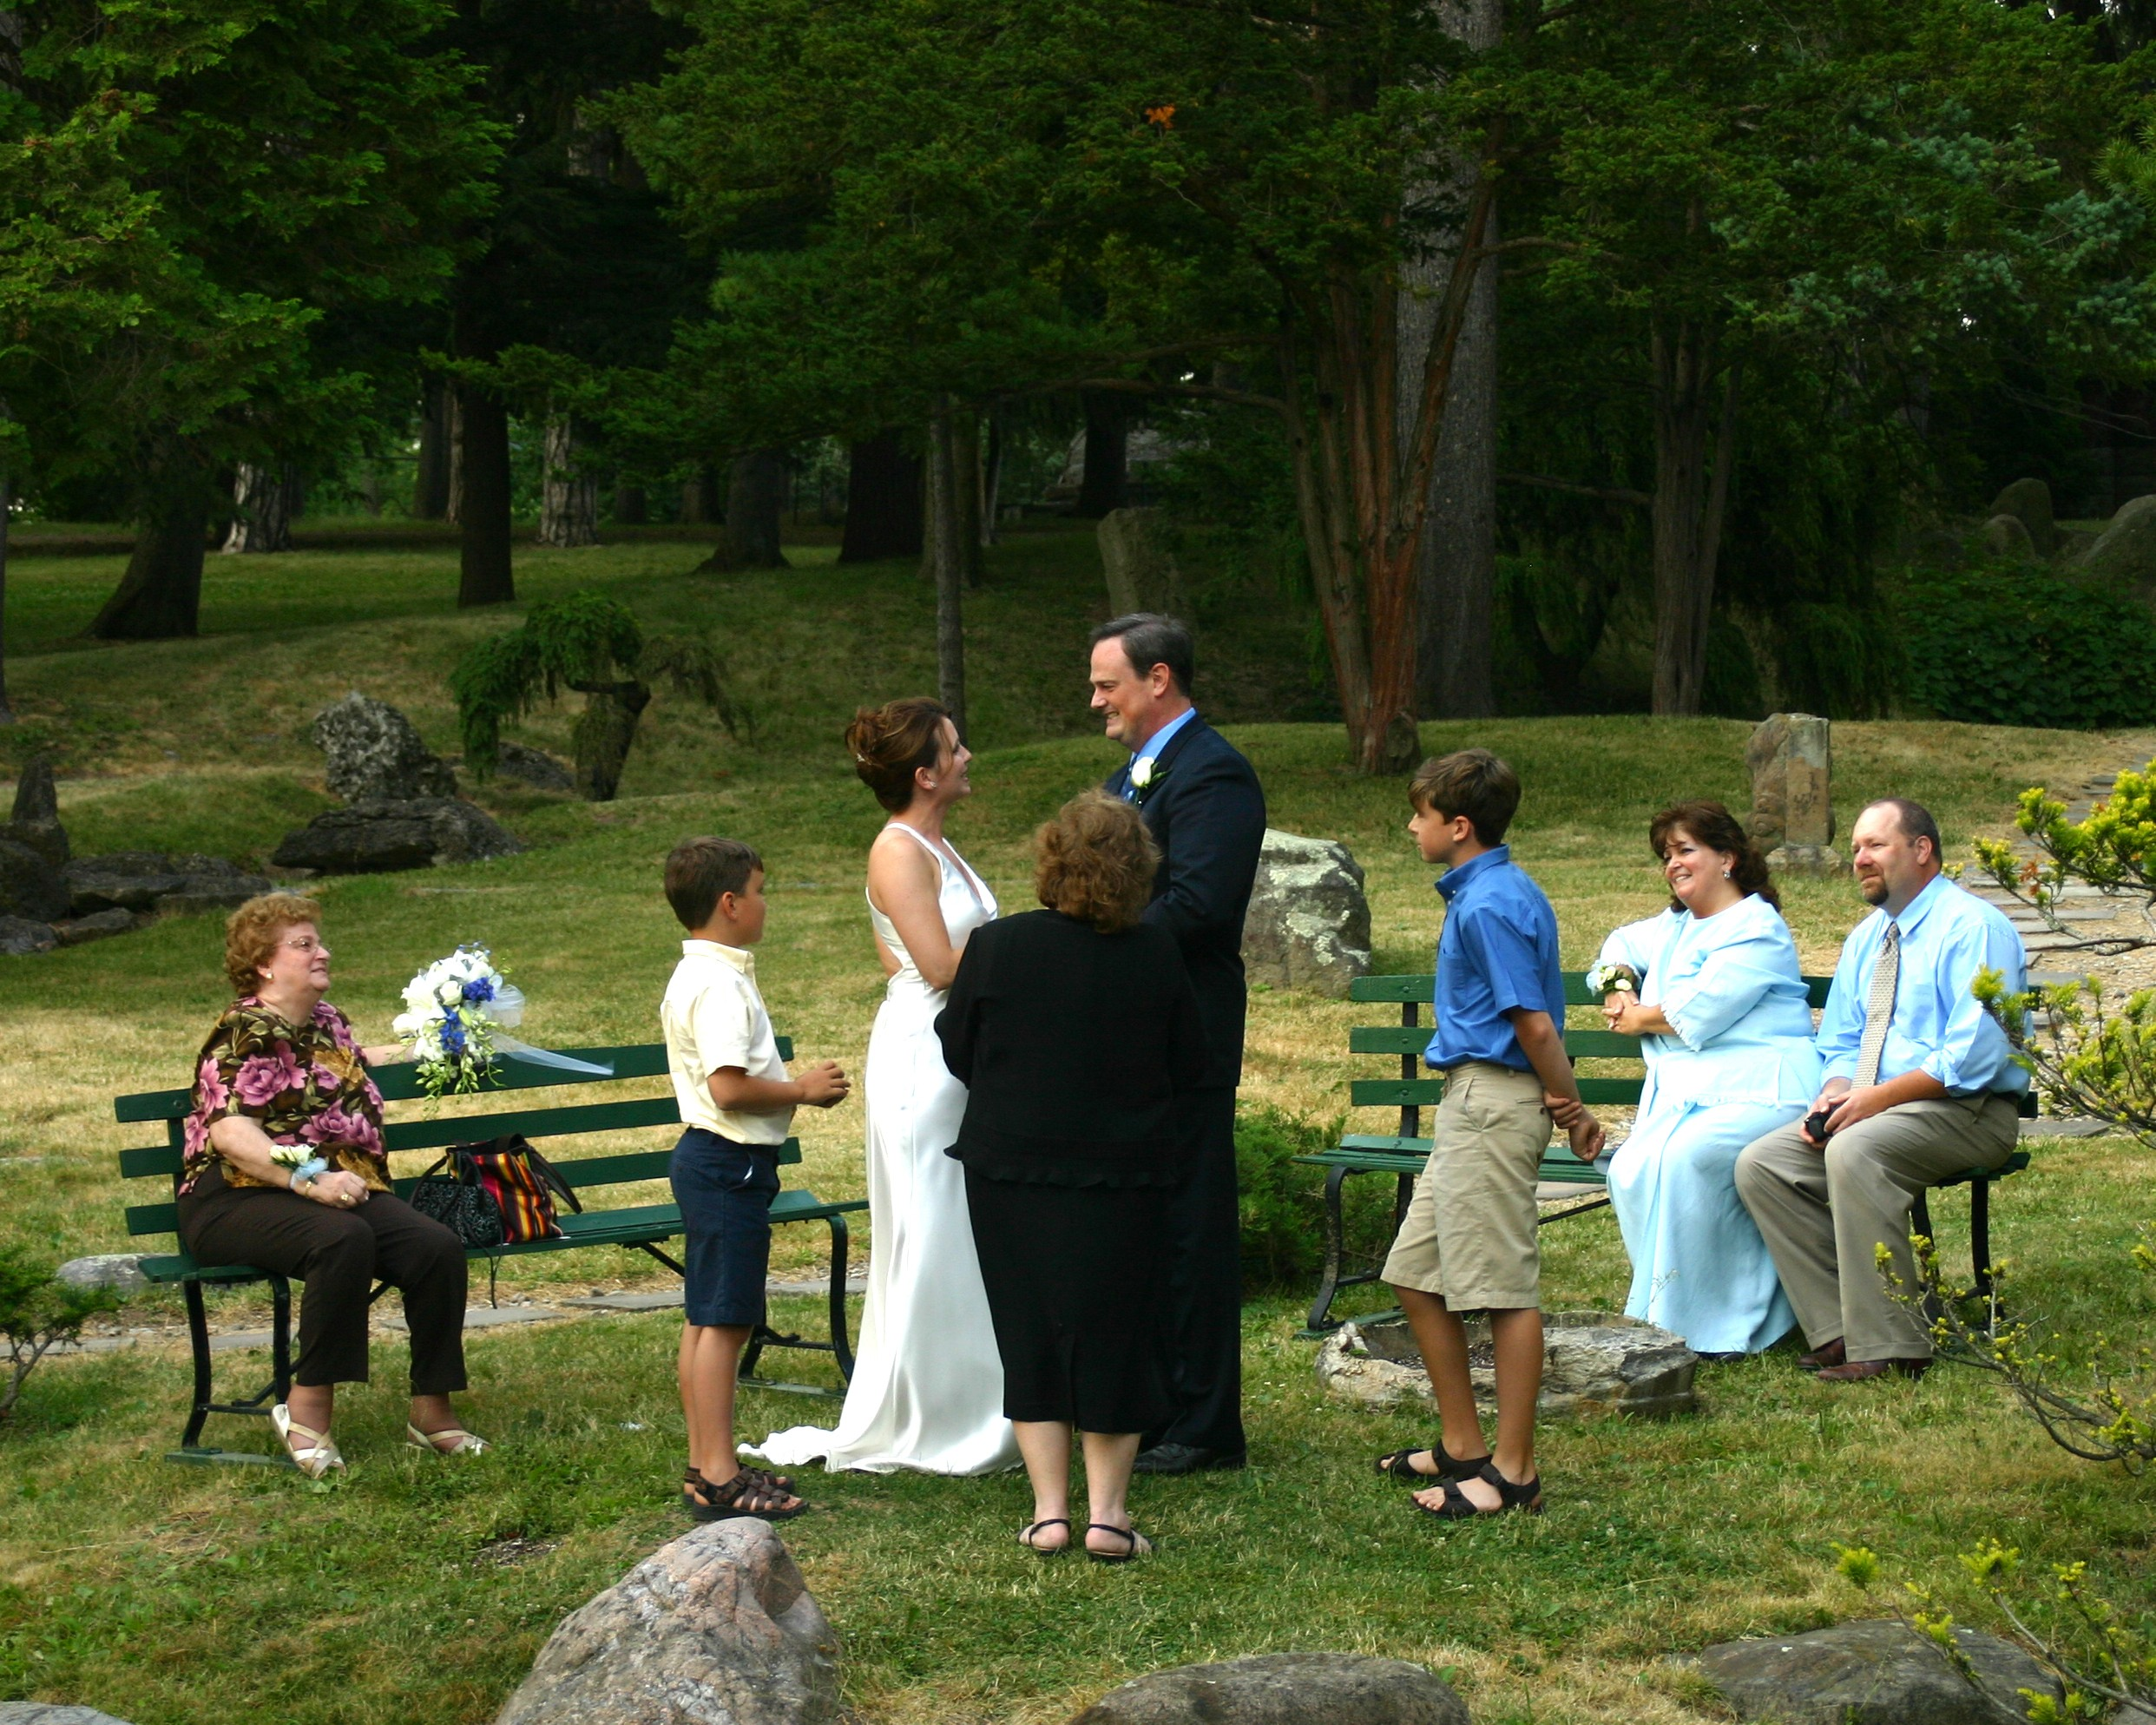 japanese-garden-wedding-ceremony_6685007993_o